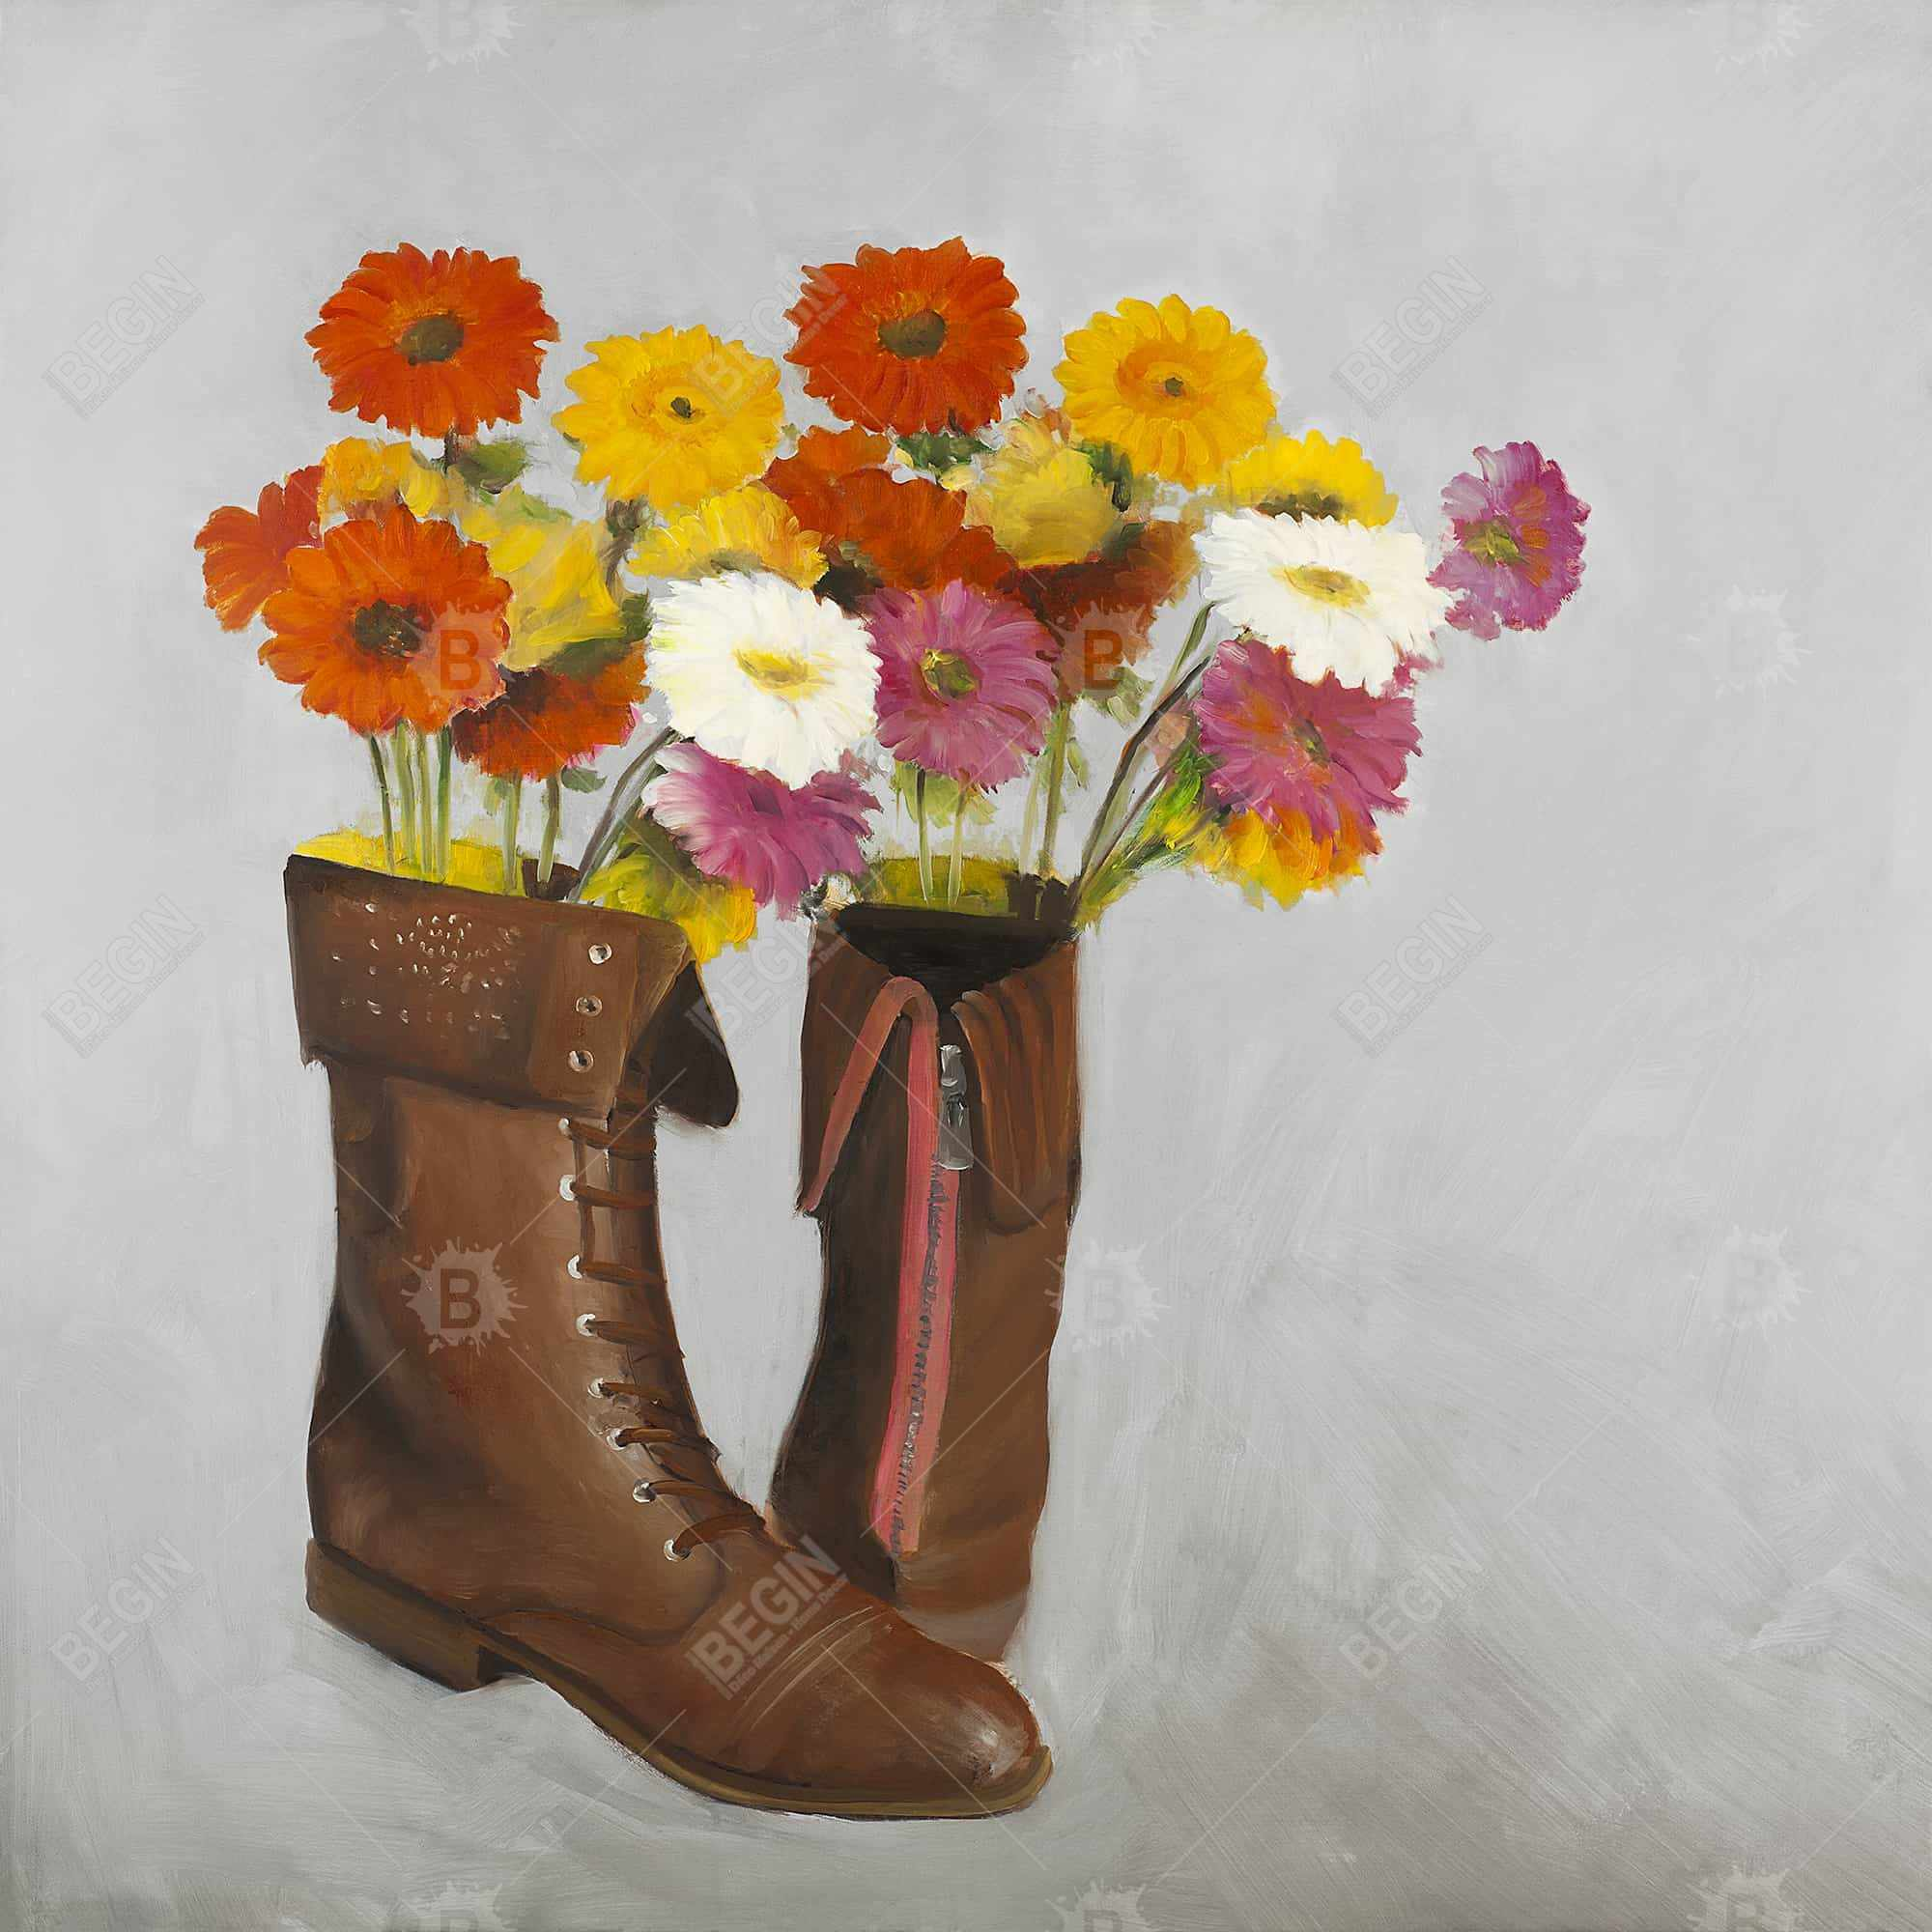 Boots with daisies flowers